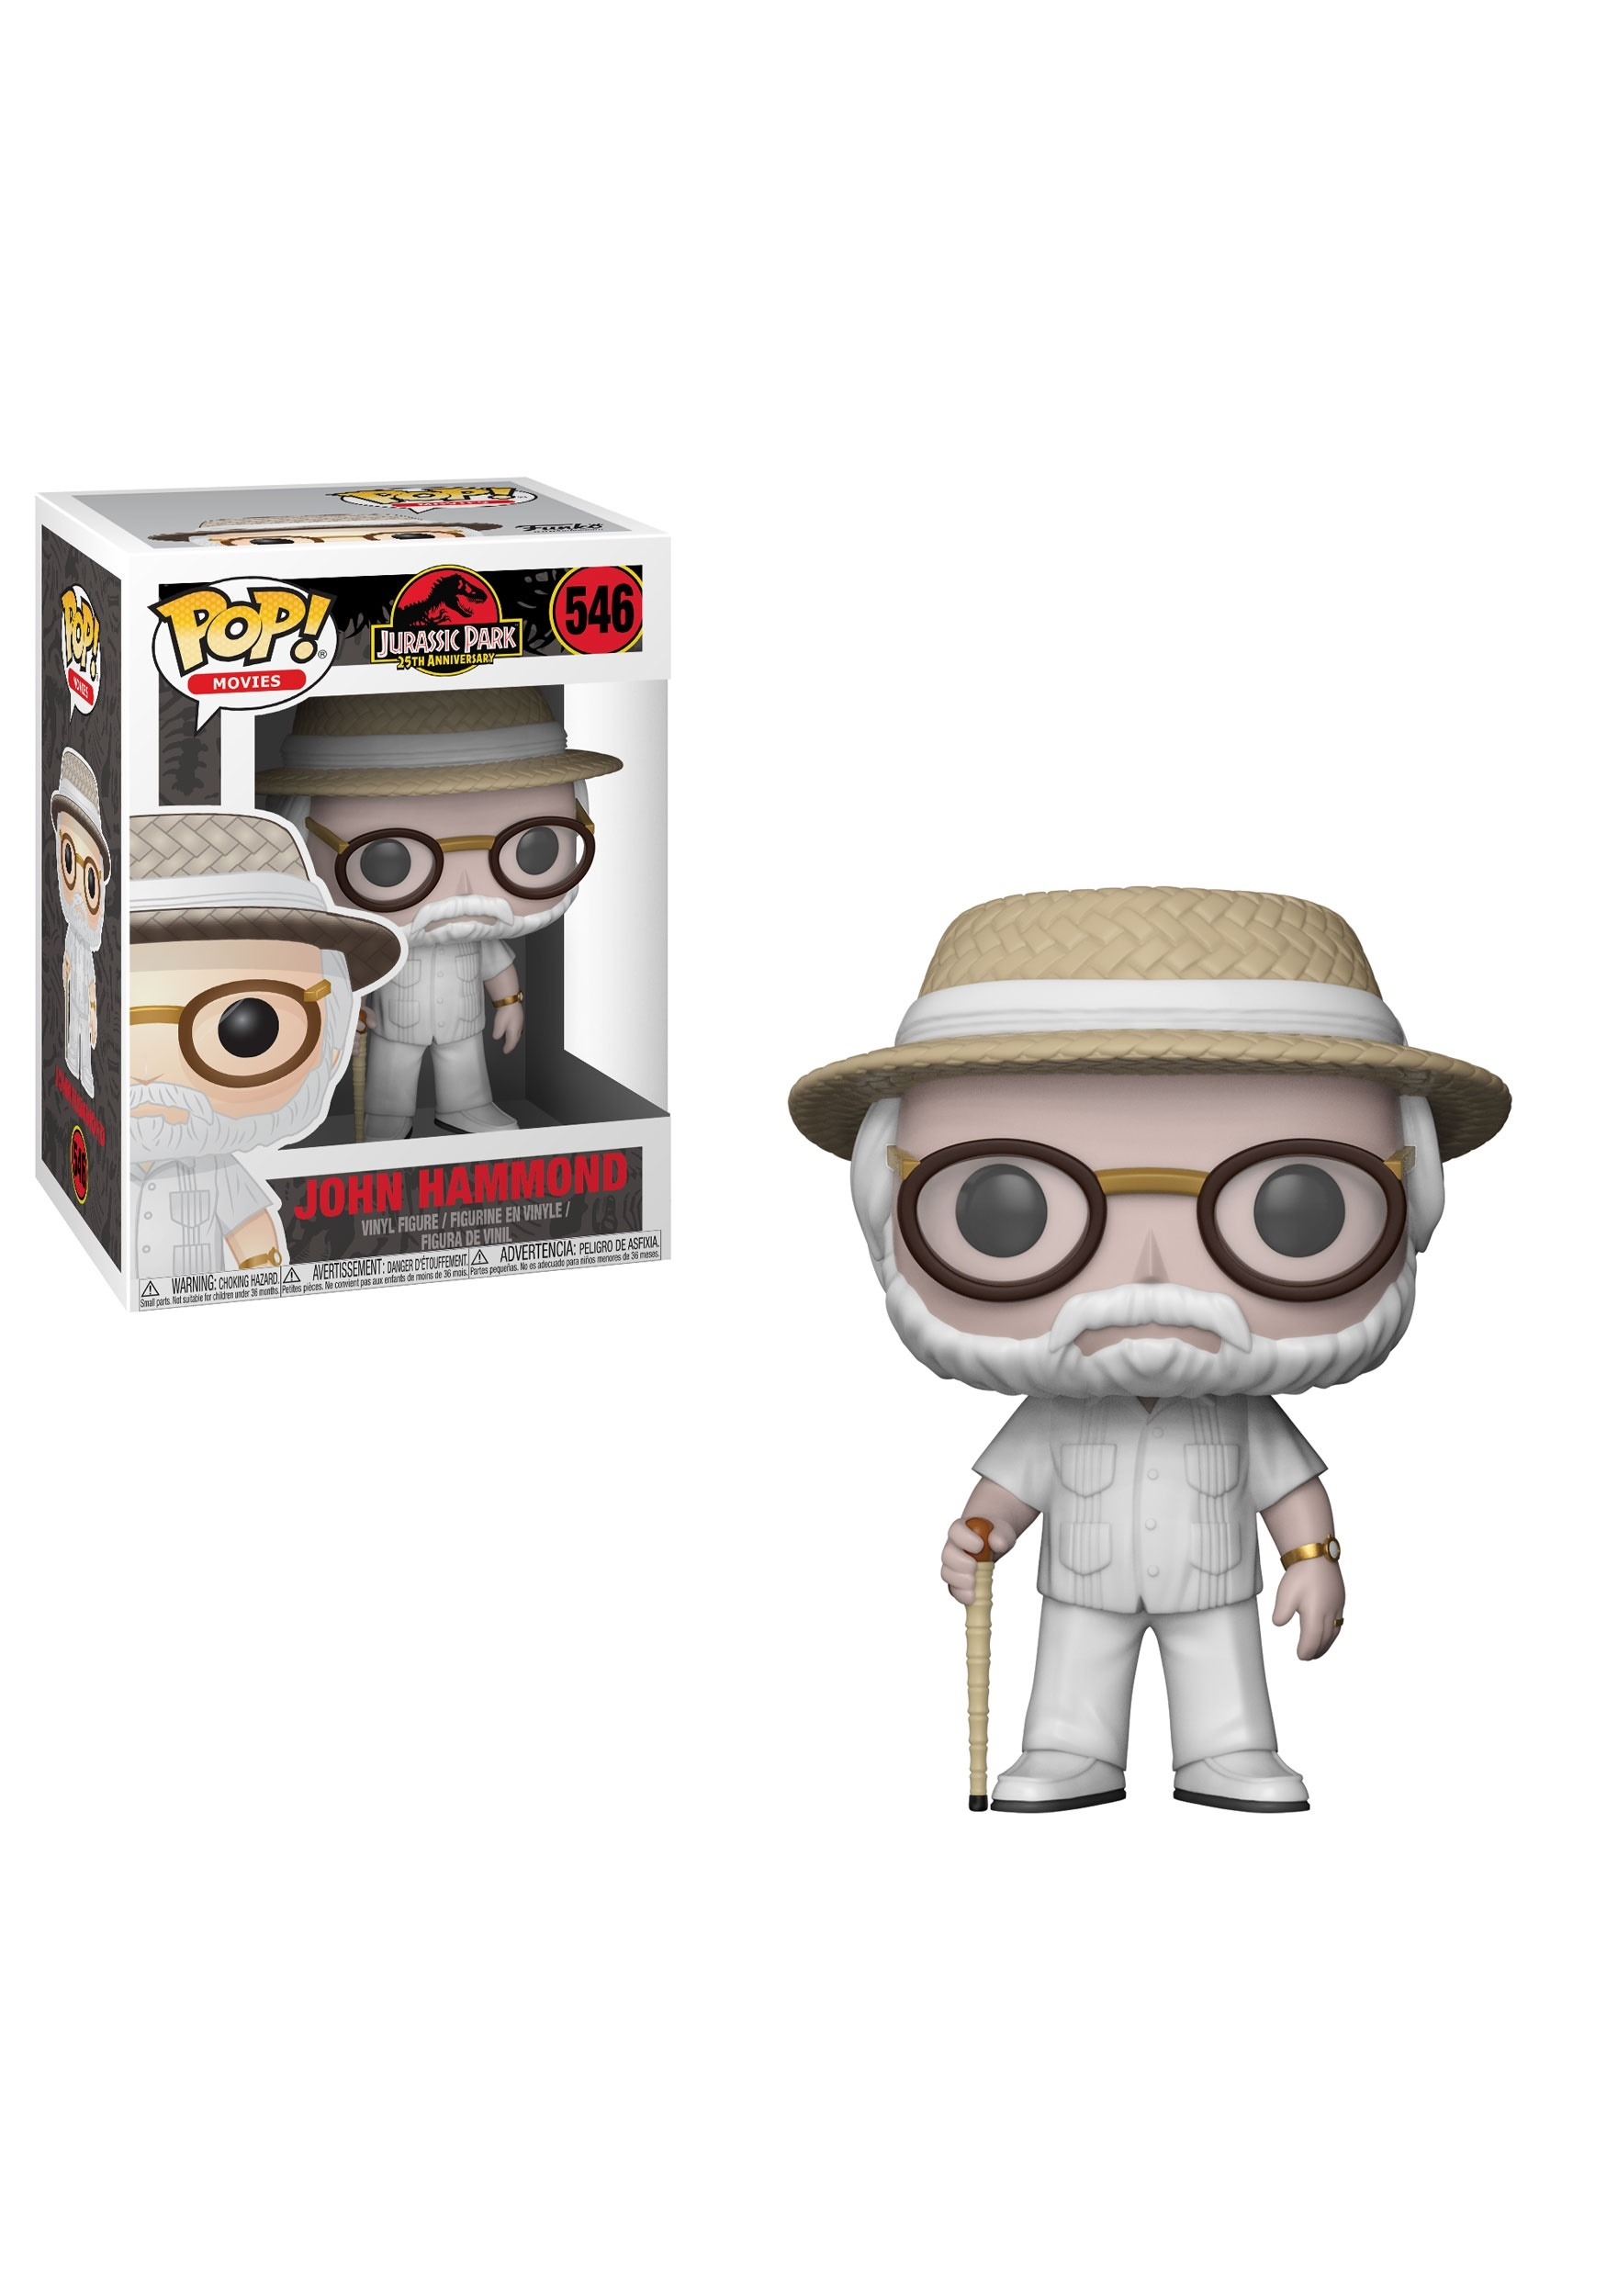 POP! Movies: Jurassic Park John Hammond Vinyl Figure FN26732